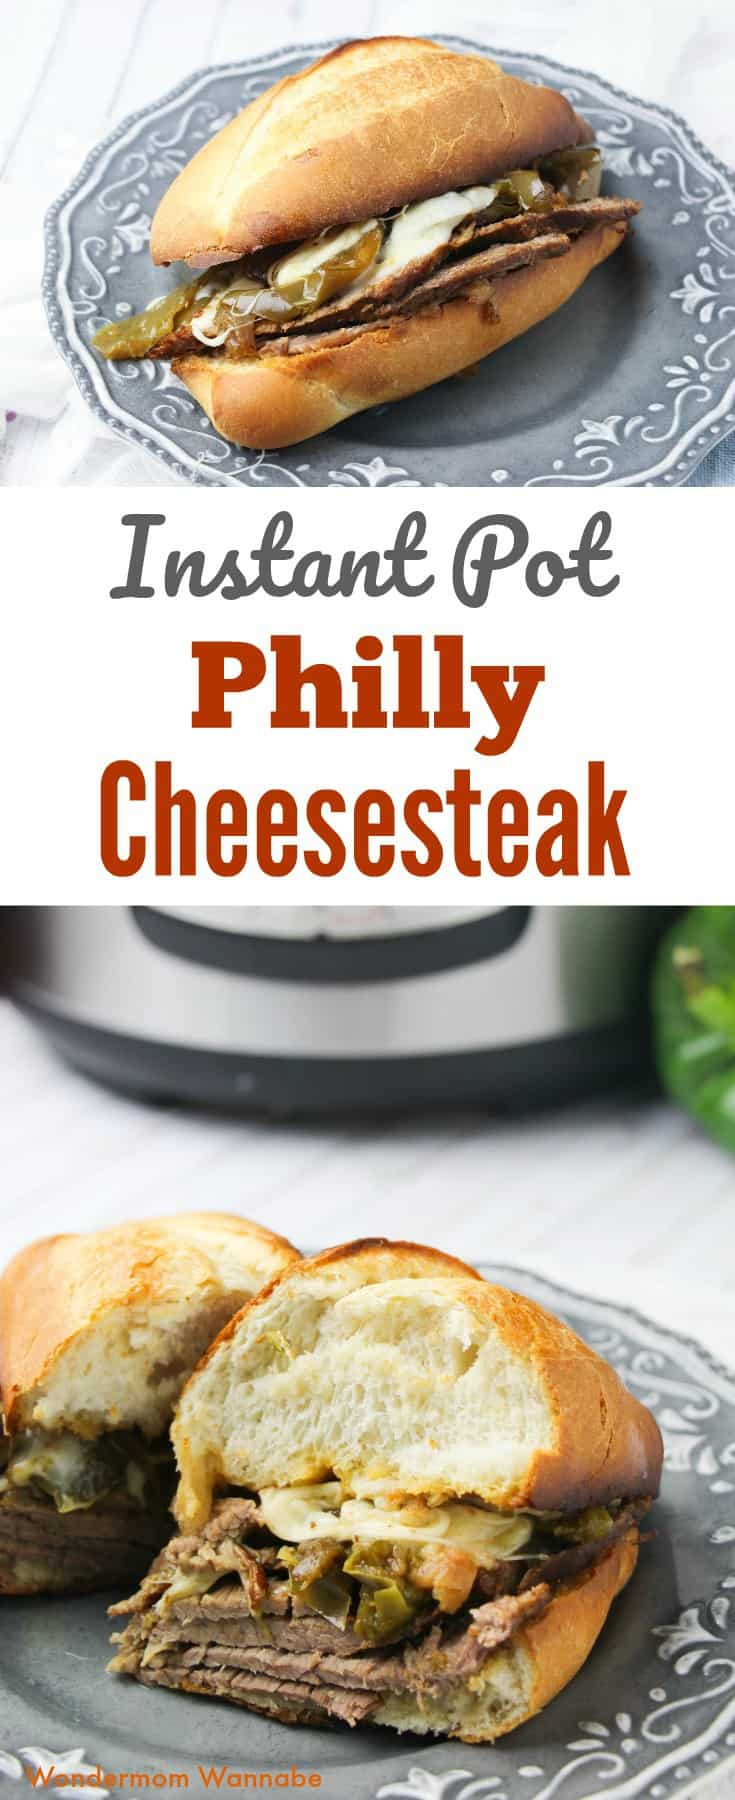 These Instant Pot Philly Cheesesteak Sandwiches are always a hit at dinner, especially with the kids! #instantpot #pressurecooker